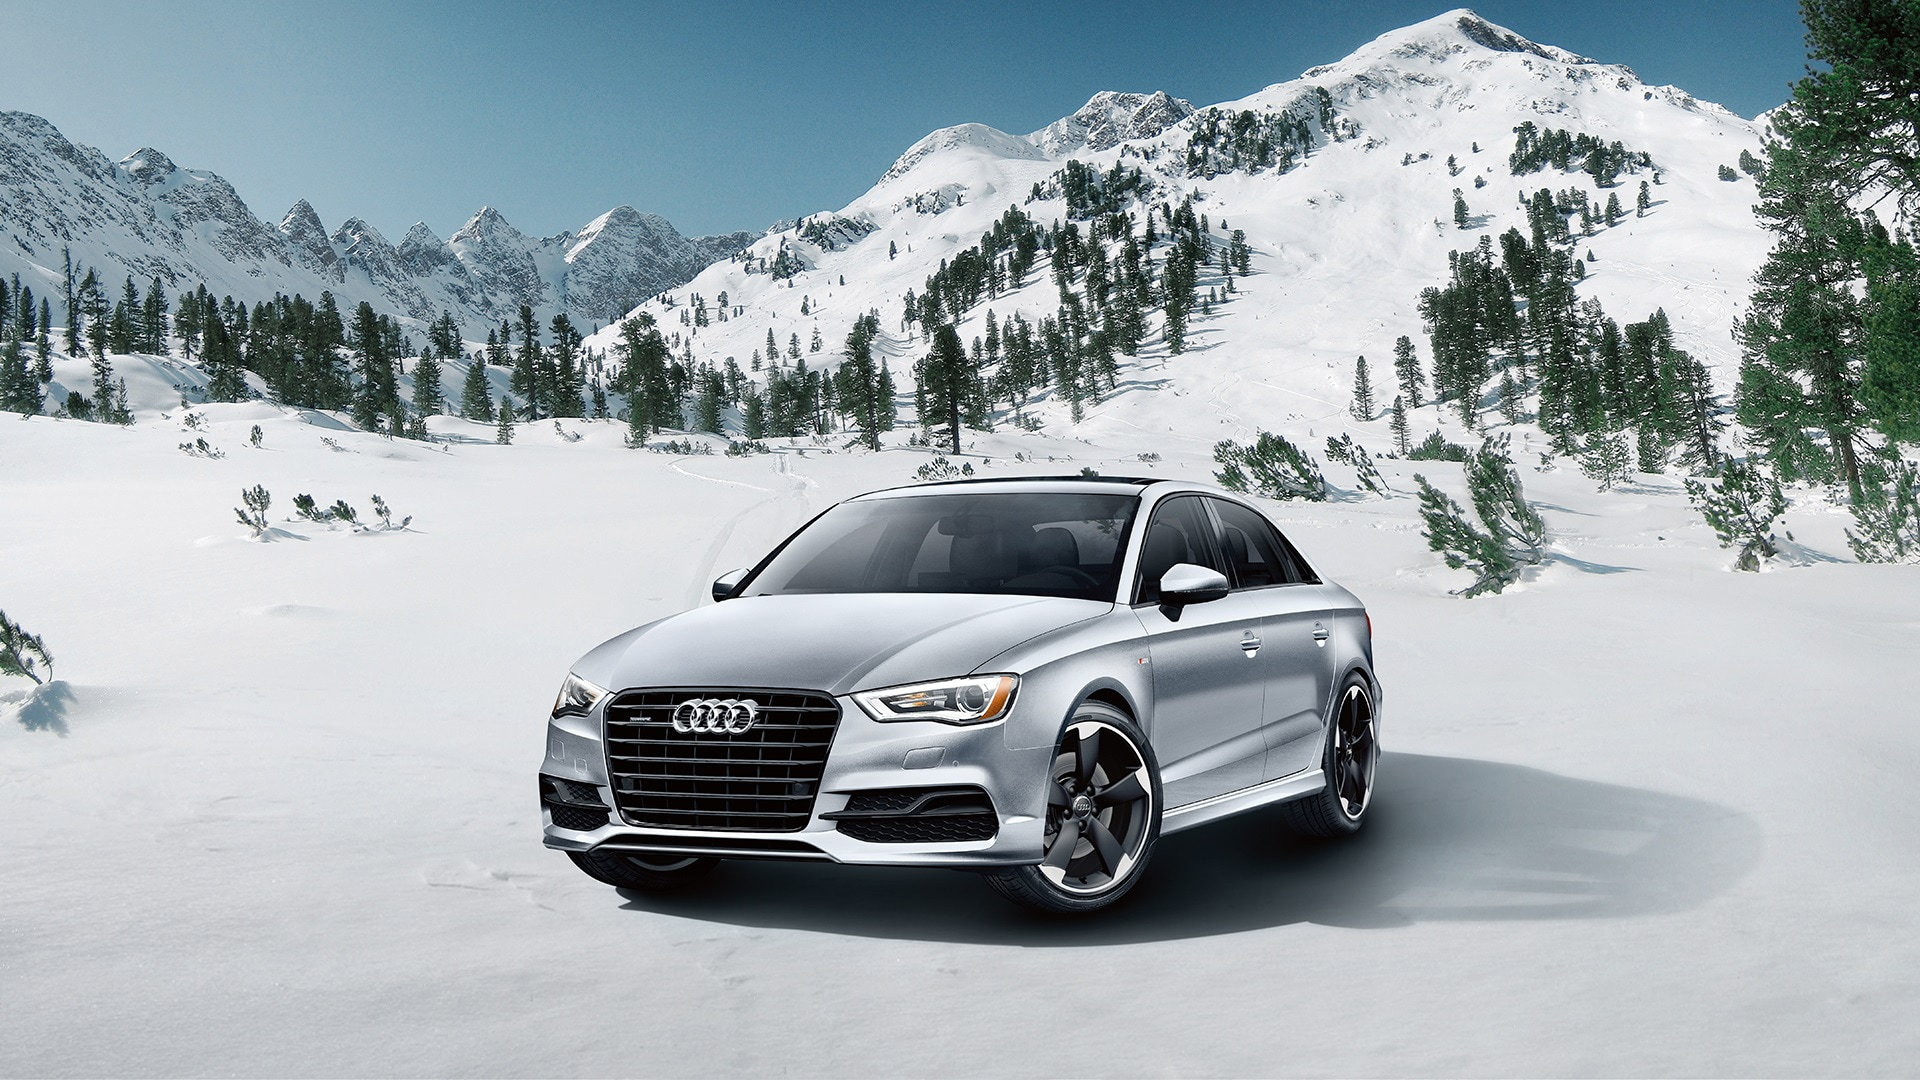 The Season Of Audi Sales Event Returns For The Holidays Audi Denver